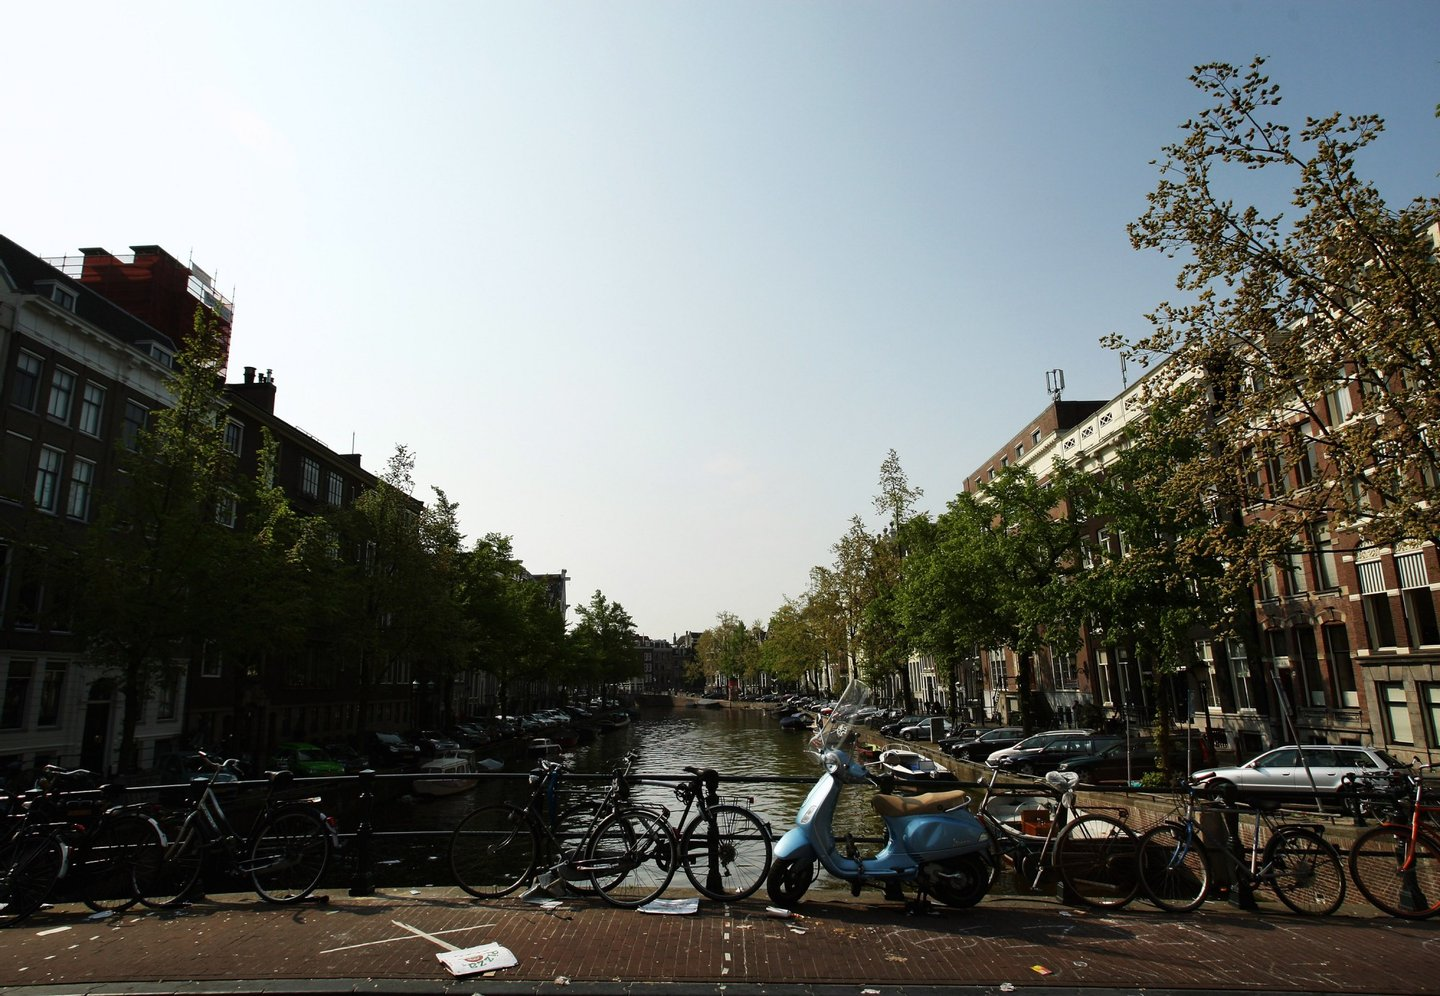 AMSTERDAM, NETHERLANDS - MAY 11: Bikes are chained to a bridge across a canal on May 11, 2009 in Amsterdam, Netherlands. The 750,000 people who live in Amsterdam own over 600,000 bicycles. (Photo by Mark Dadswell/Getty Images)